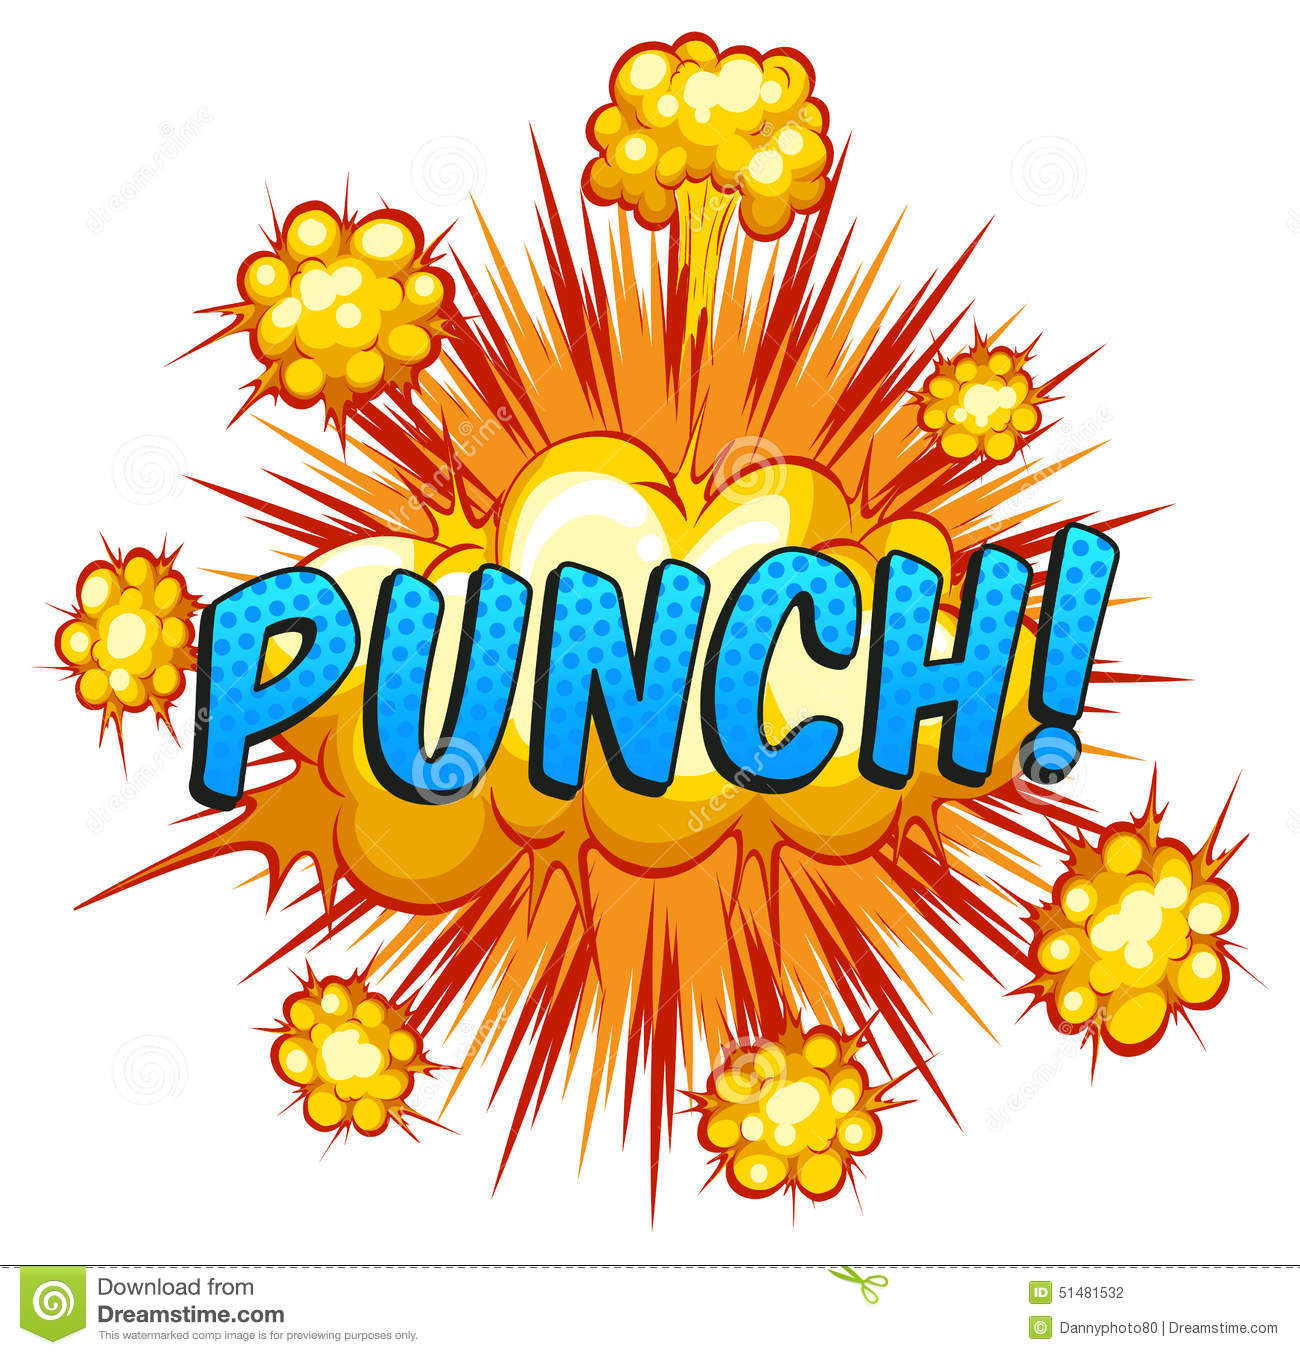 Word 'punch' with cloud explosion background.